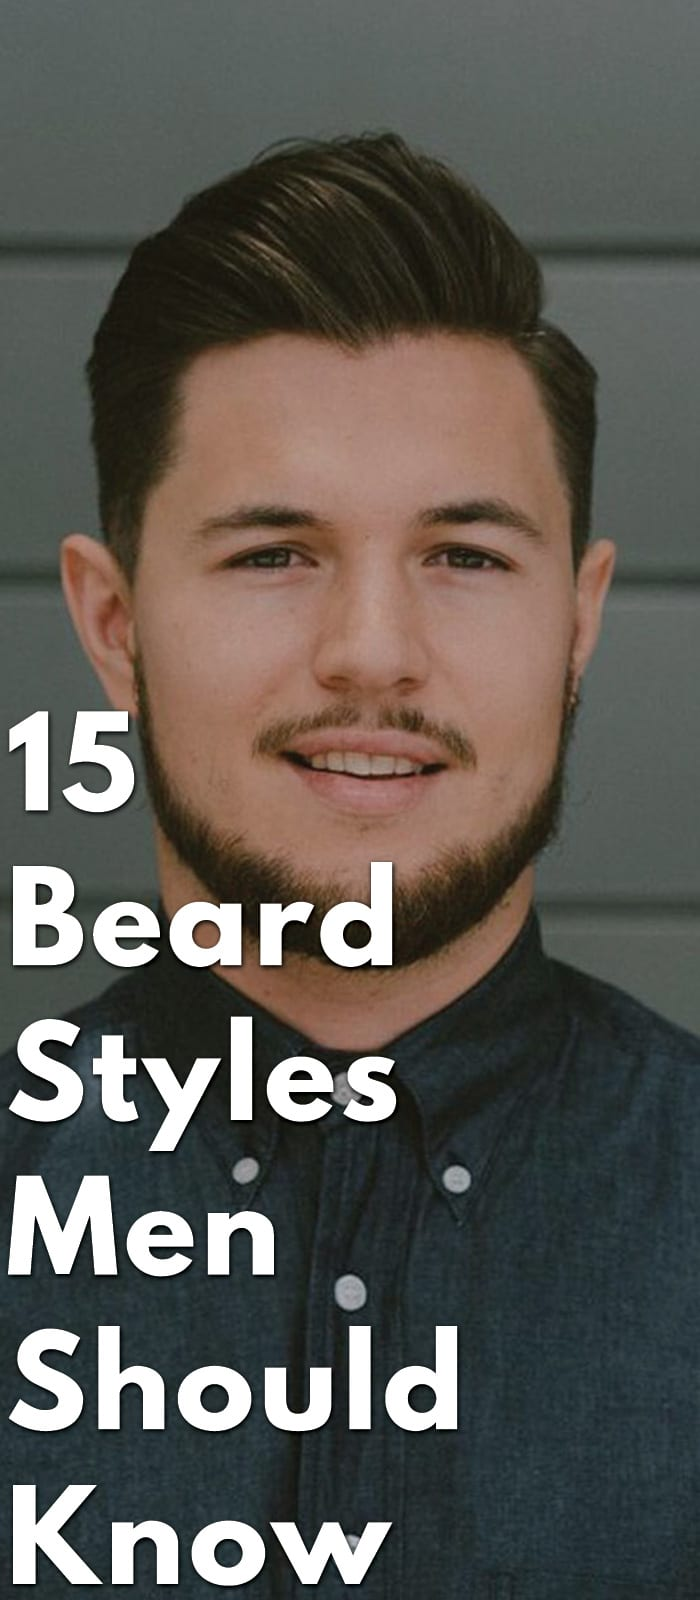 15-Beard-Styles-Men-Should-Know-.